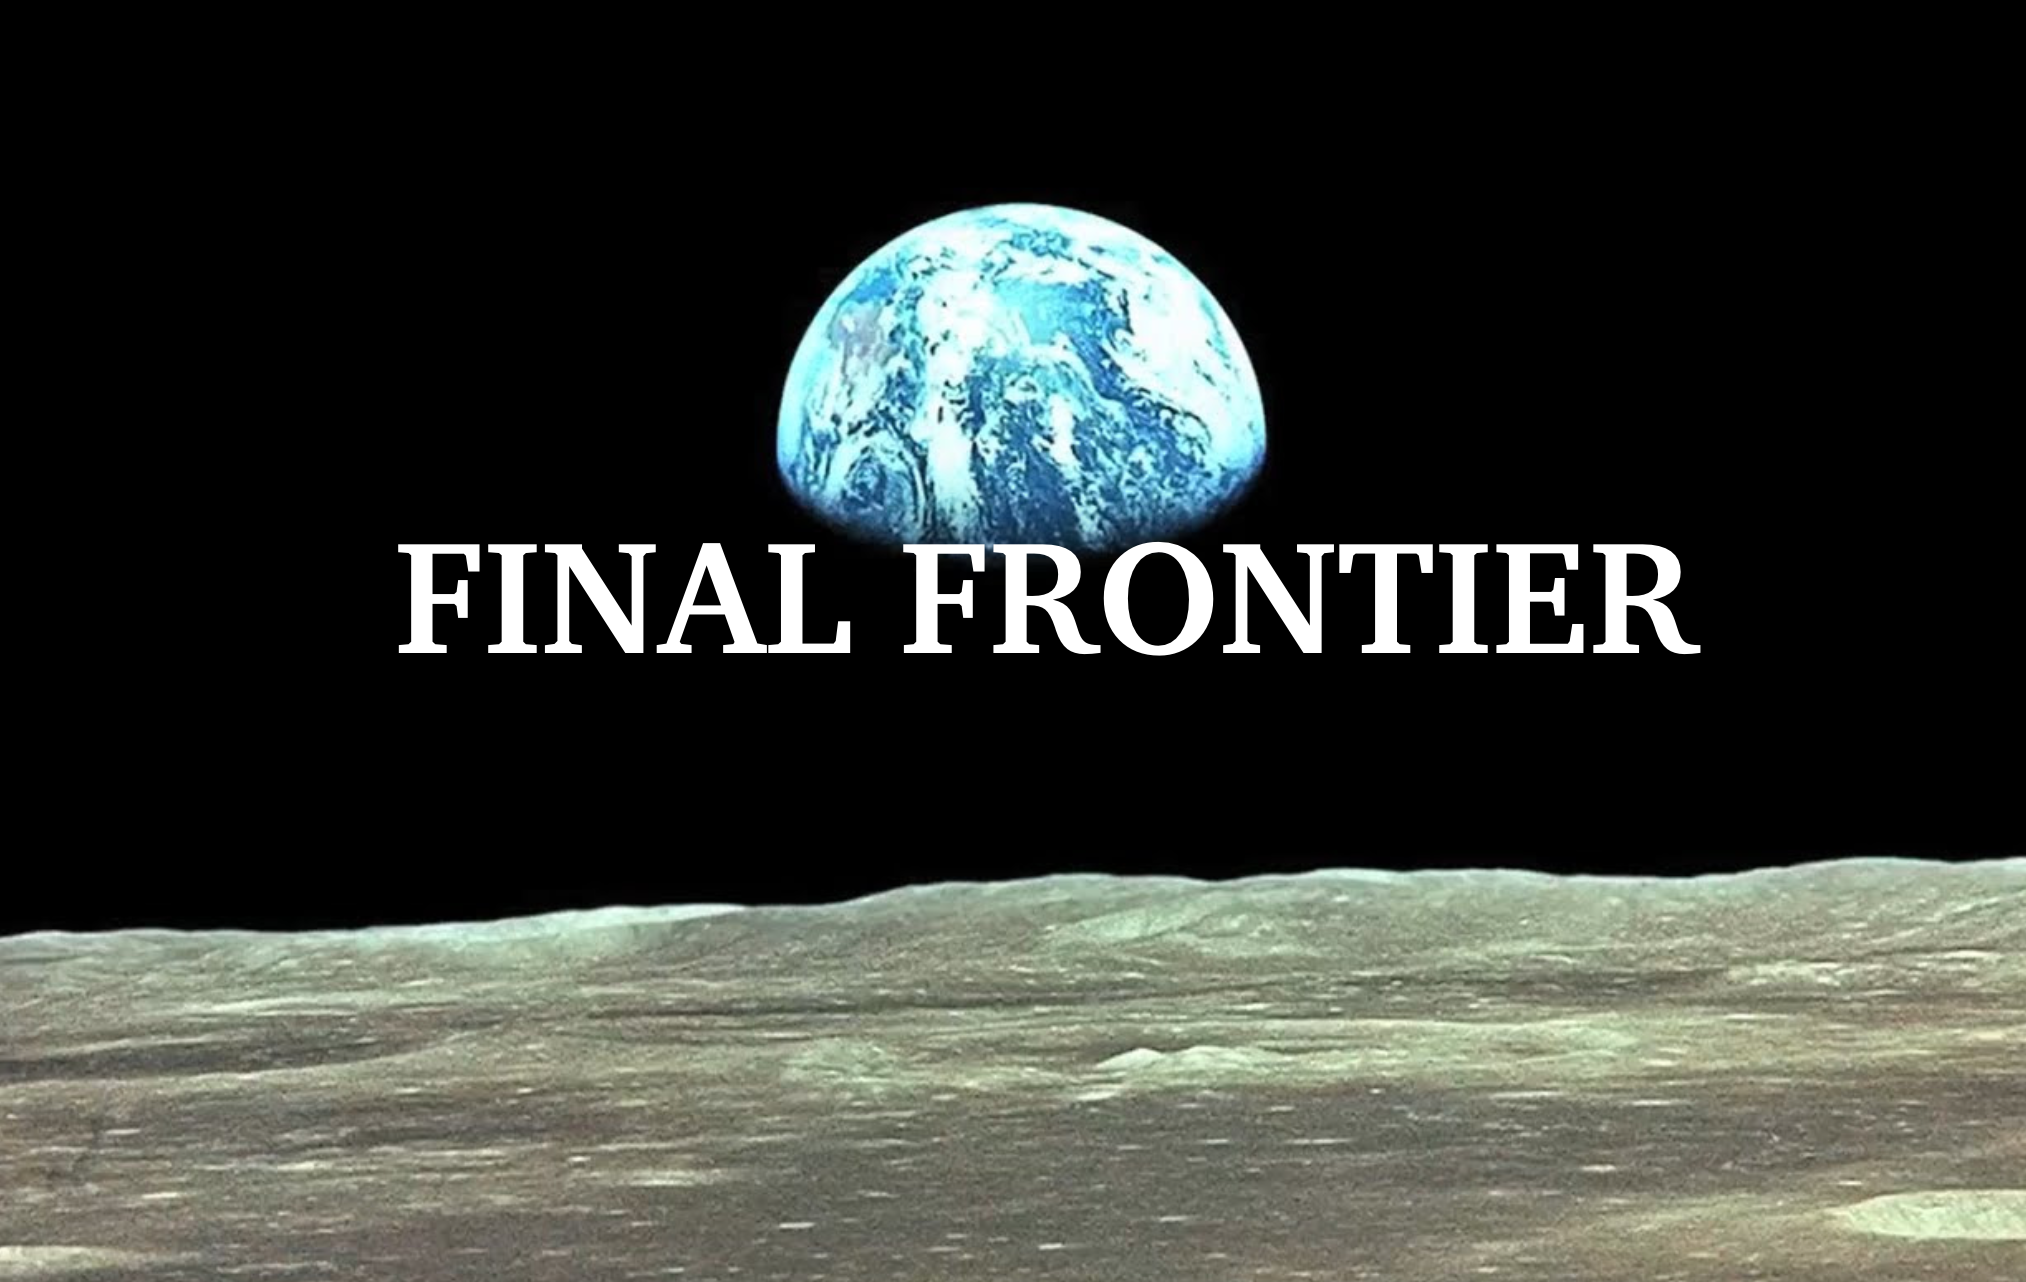 New Channel: Final Frontier